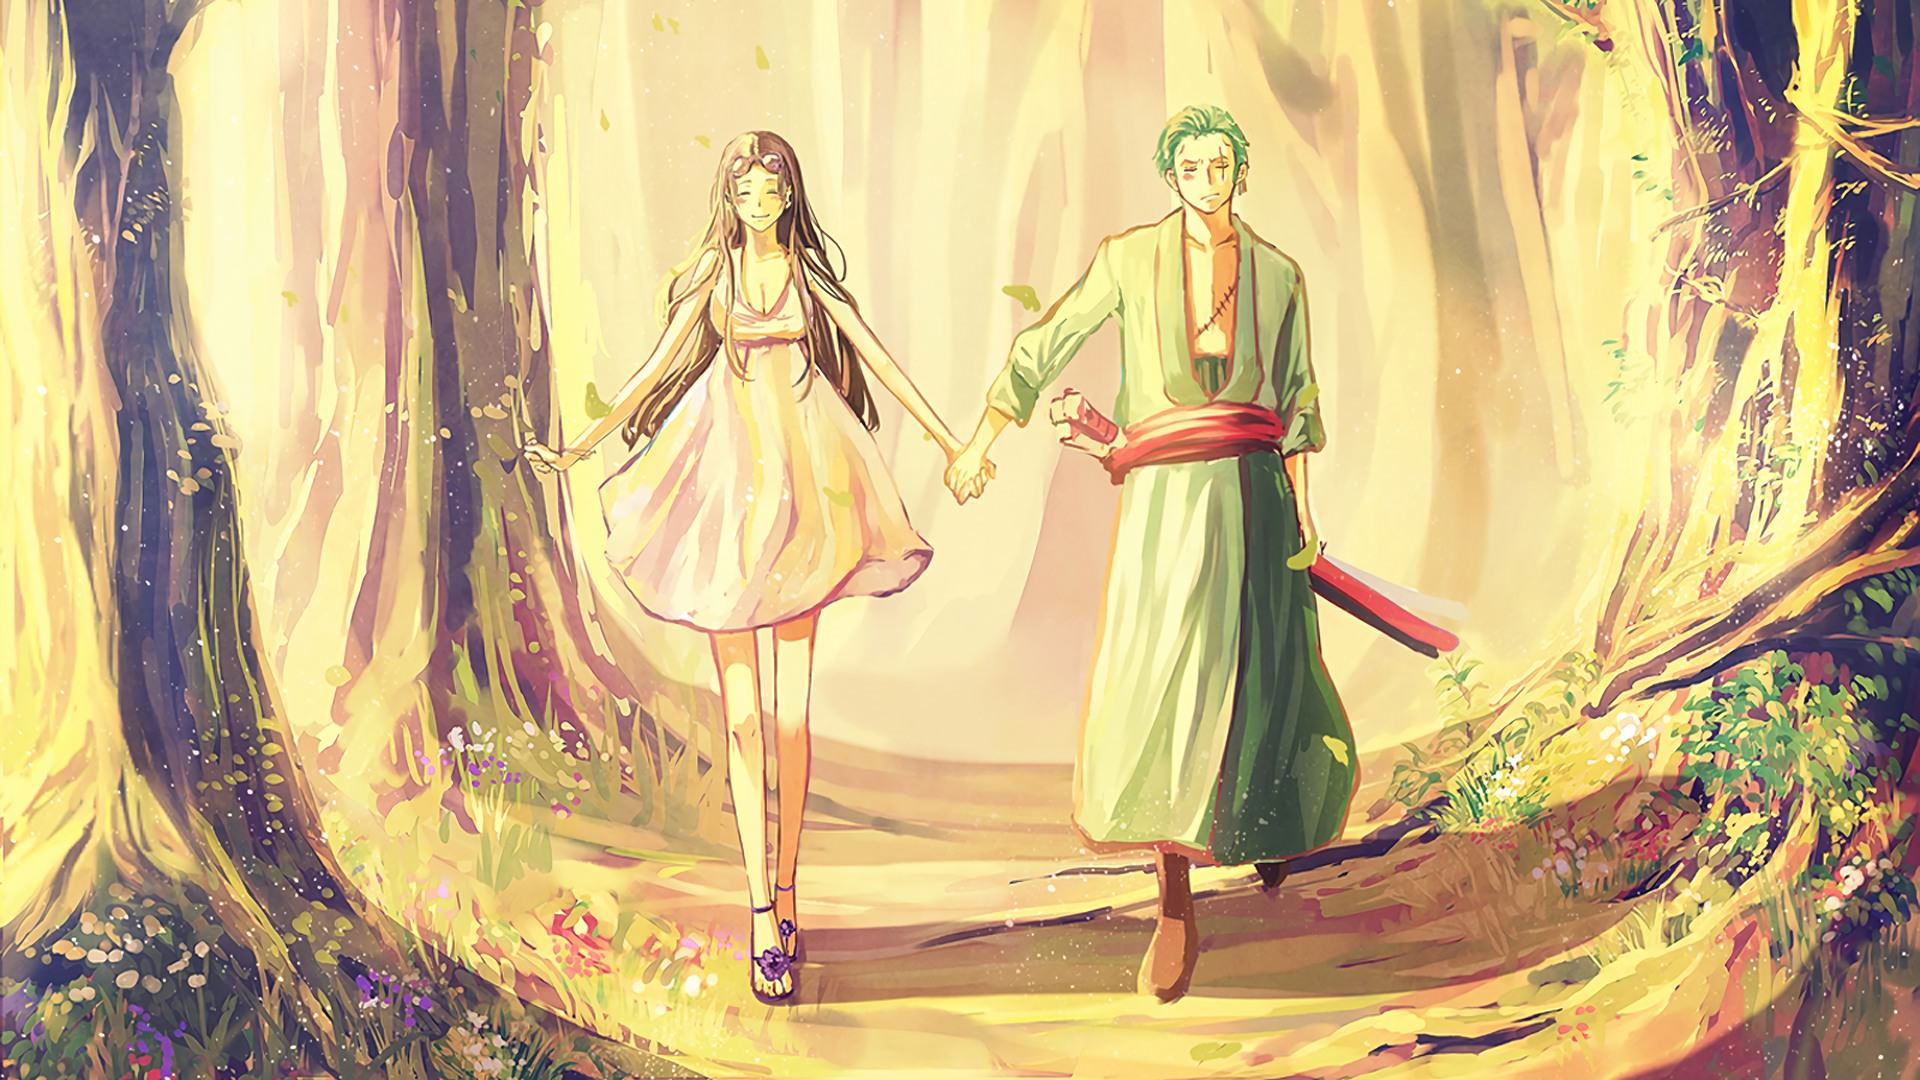 Nico robin wallpapers 63 images. One Piece Zoro Wallpapers - Top Free One Piece Zoro ...